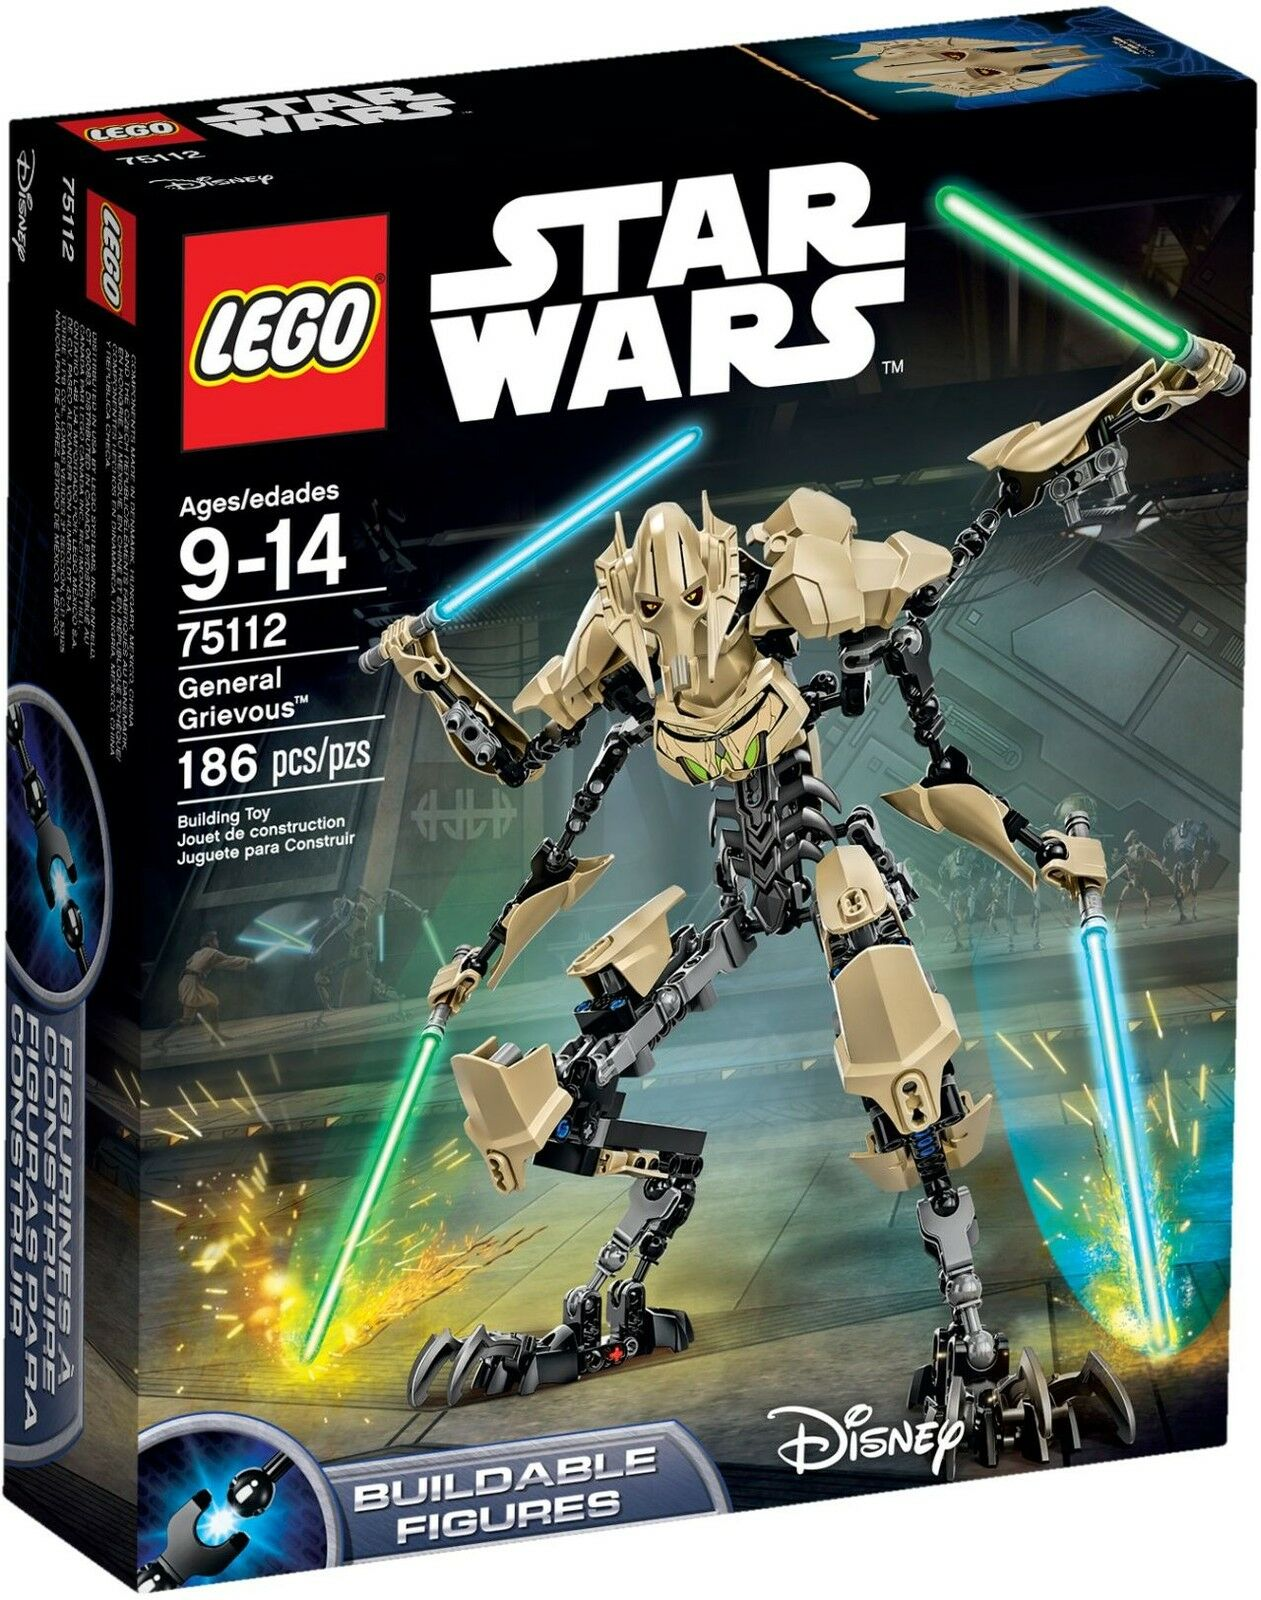 LEGO Star Wars - 75112 General Grievous - Neu & OVP